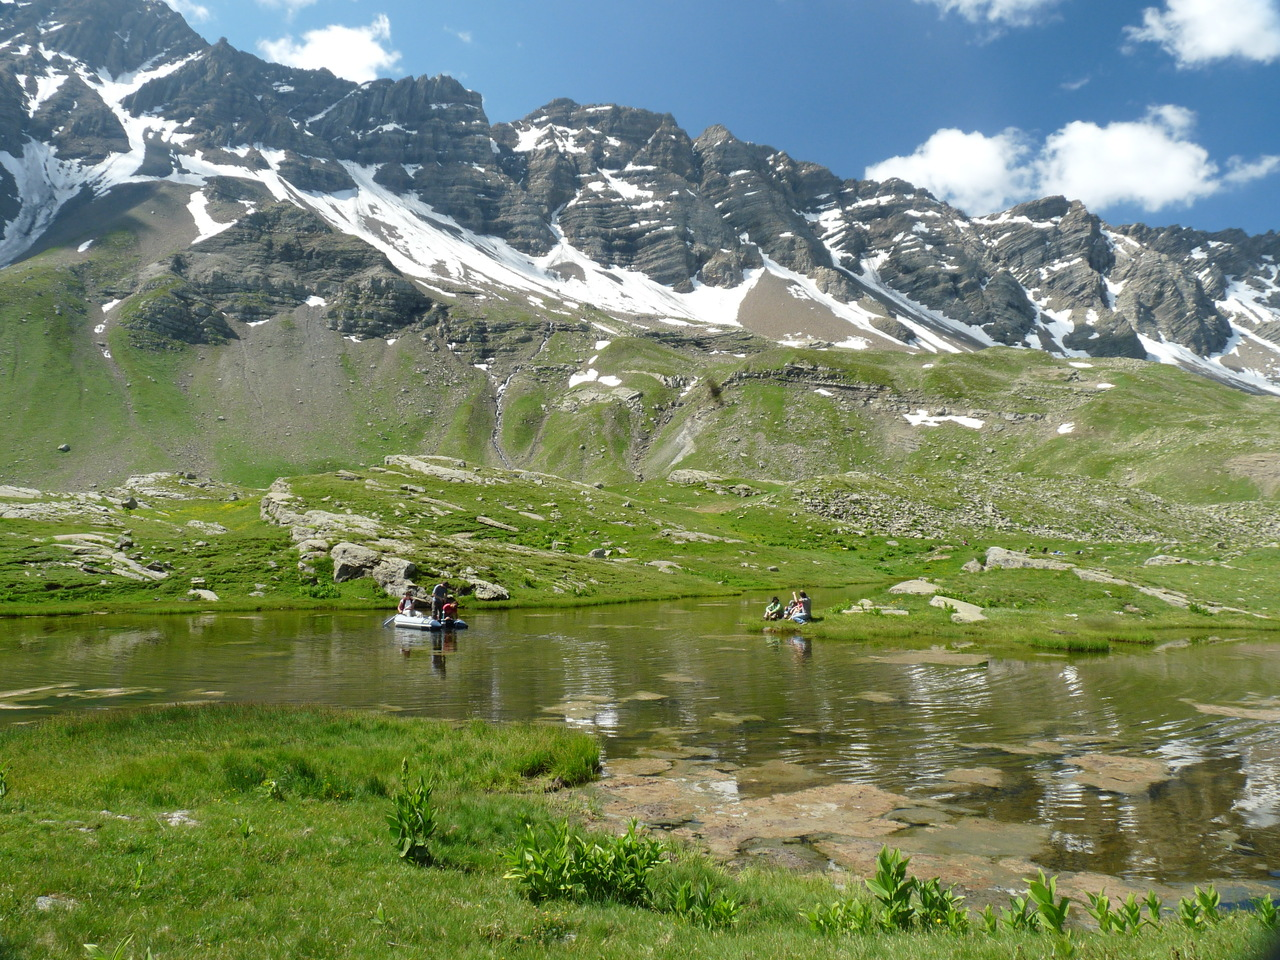 New insights on lake sediment DNA from the catchment: importance of taphonomic and analytical issues on the record quality